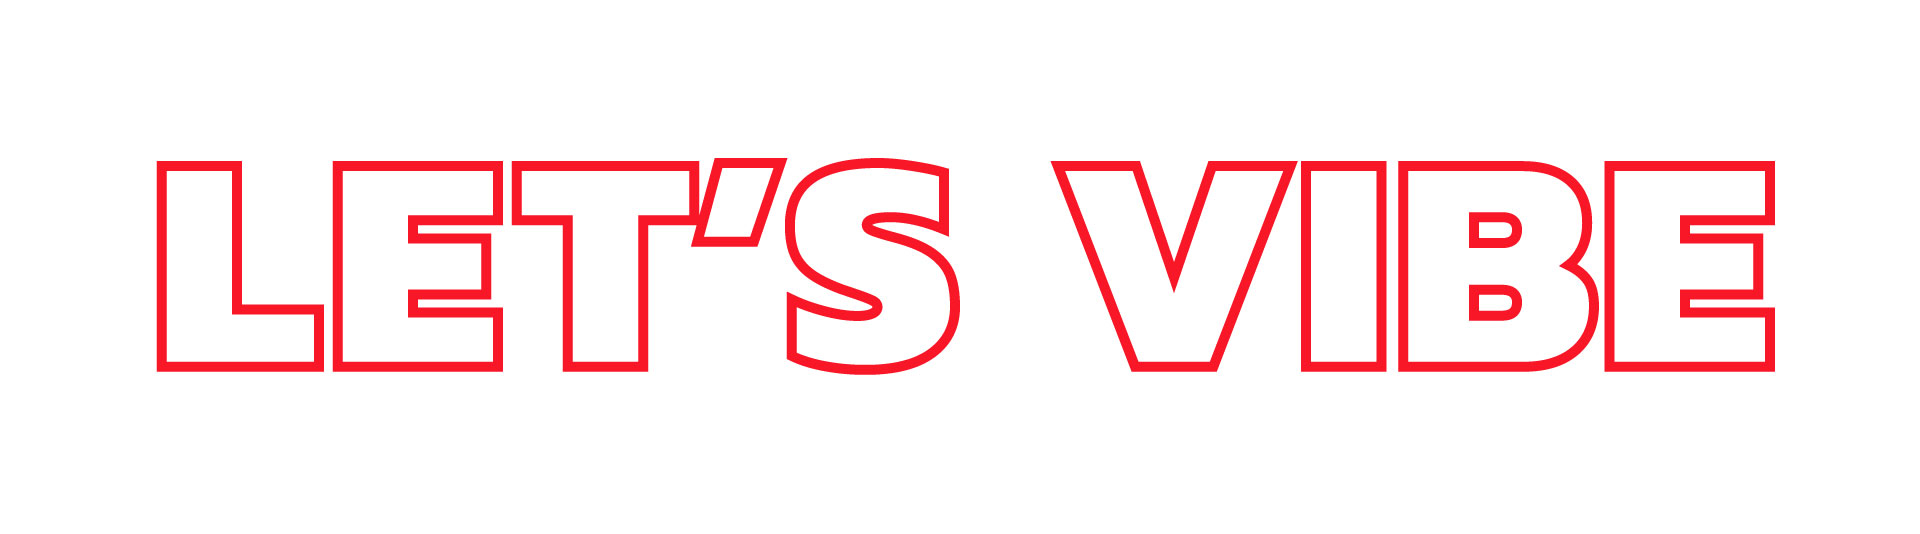 Lets vibe Red Vibes design